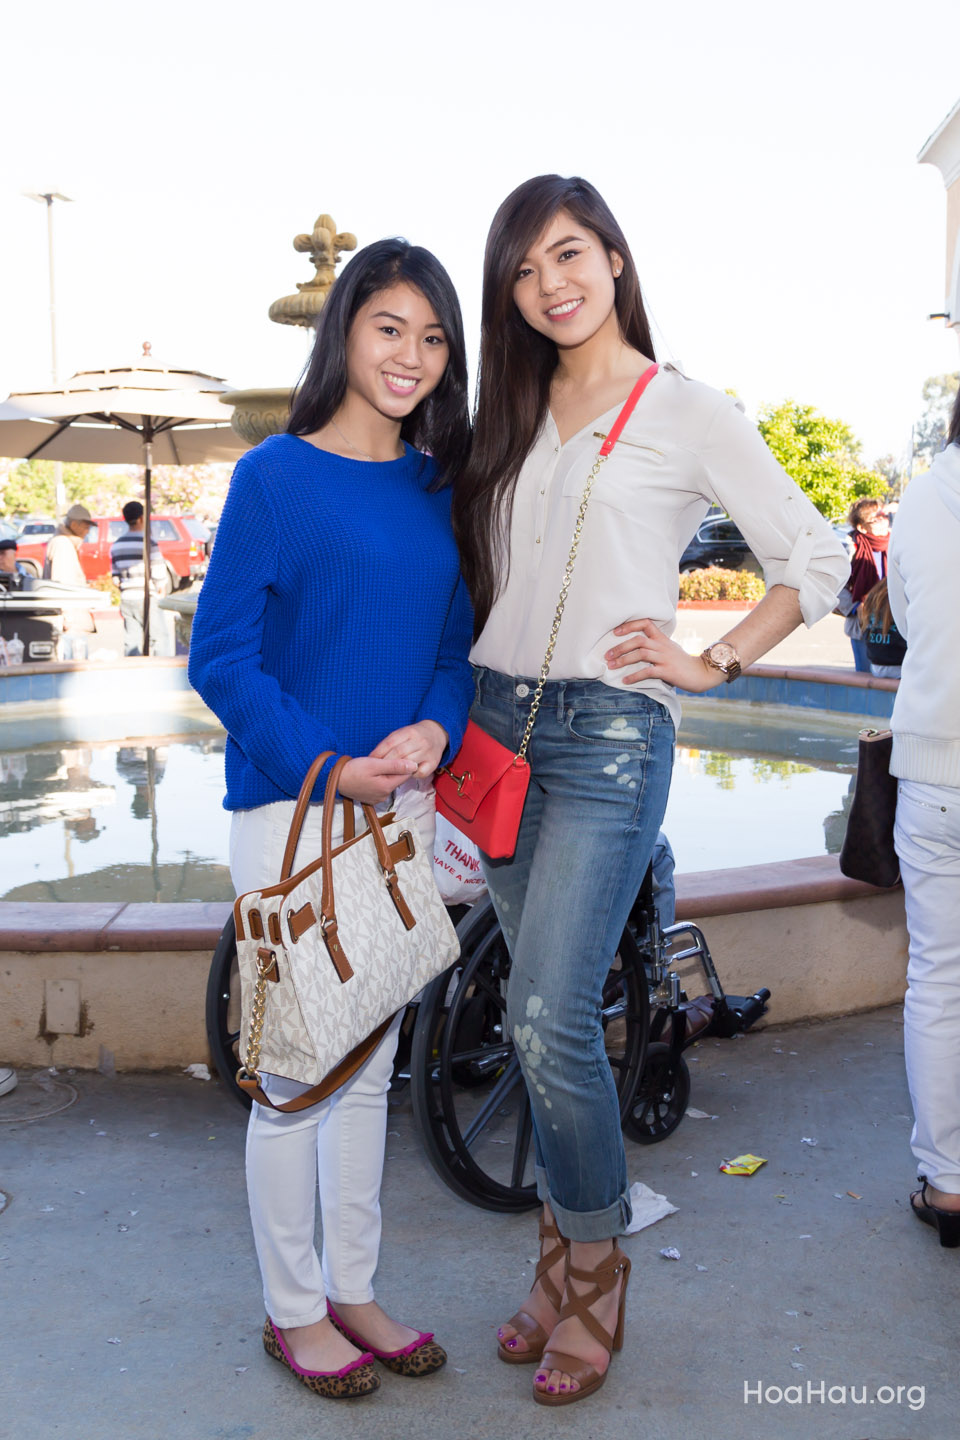 Vinh Thanh Jewelry Mercedes-Benz giveaway 2014 - Image 141